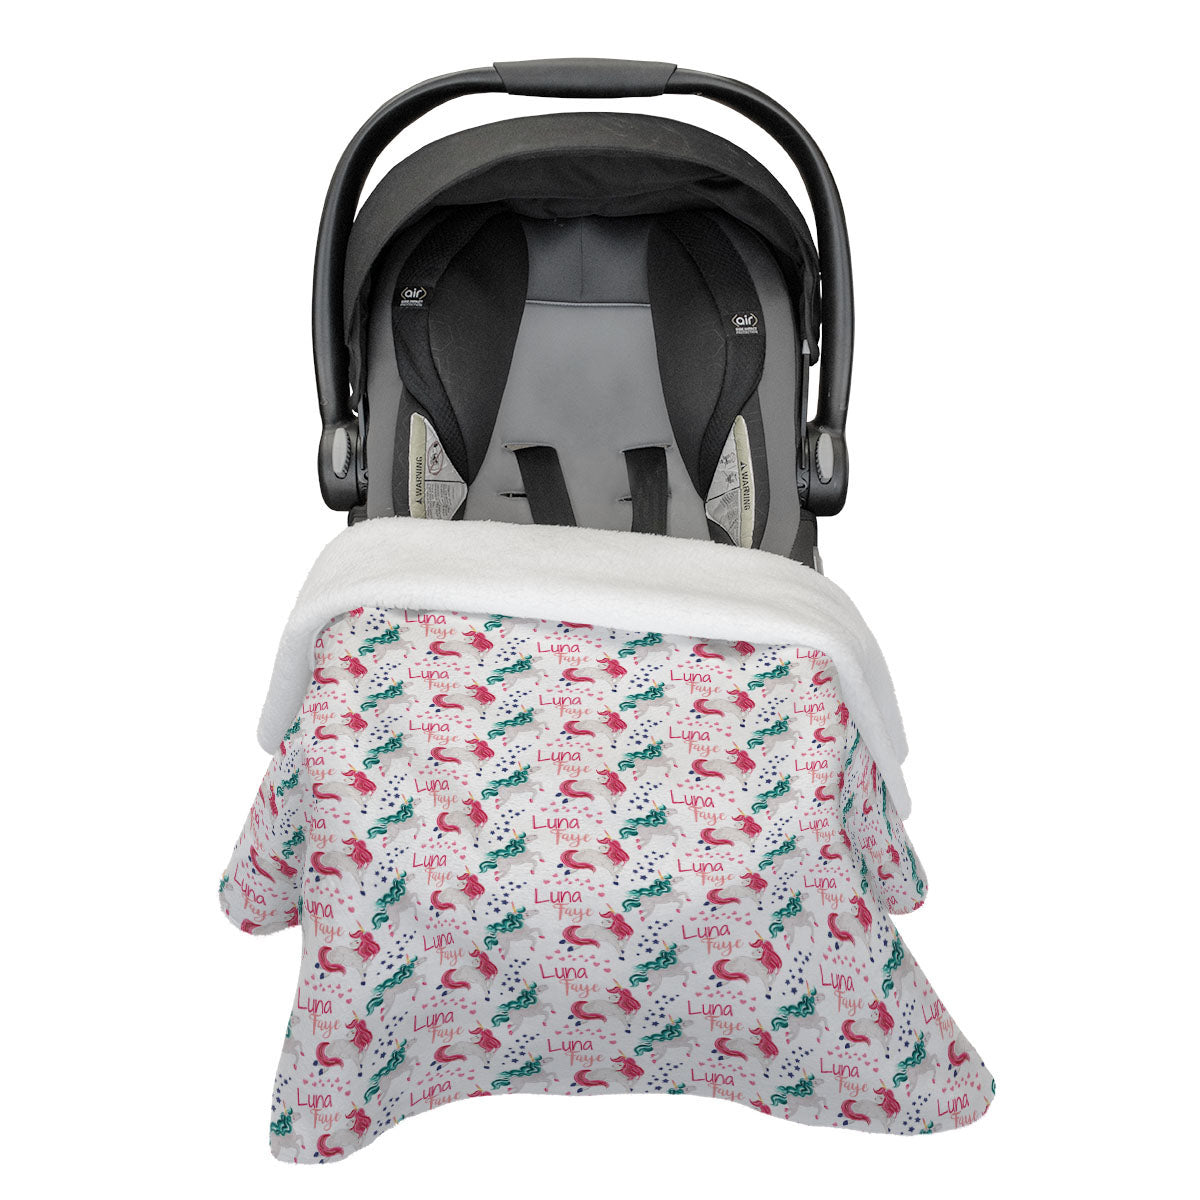 Luna's Magical Unicorn | Car Seat Blanket